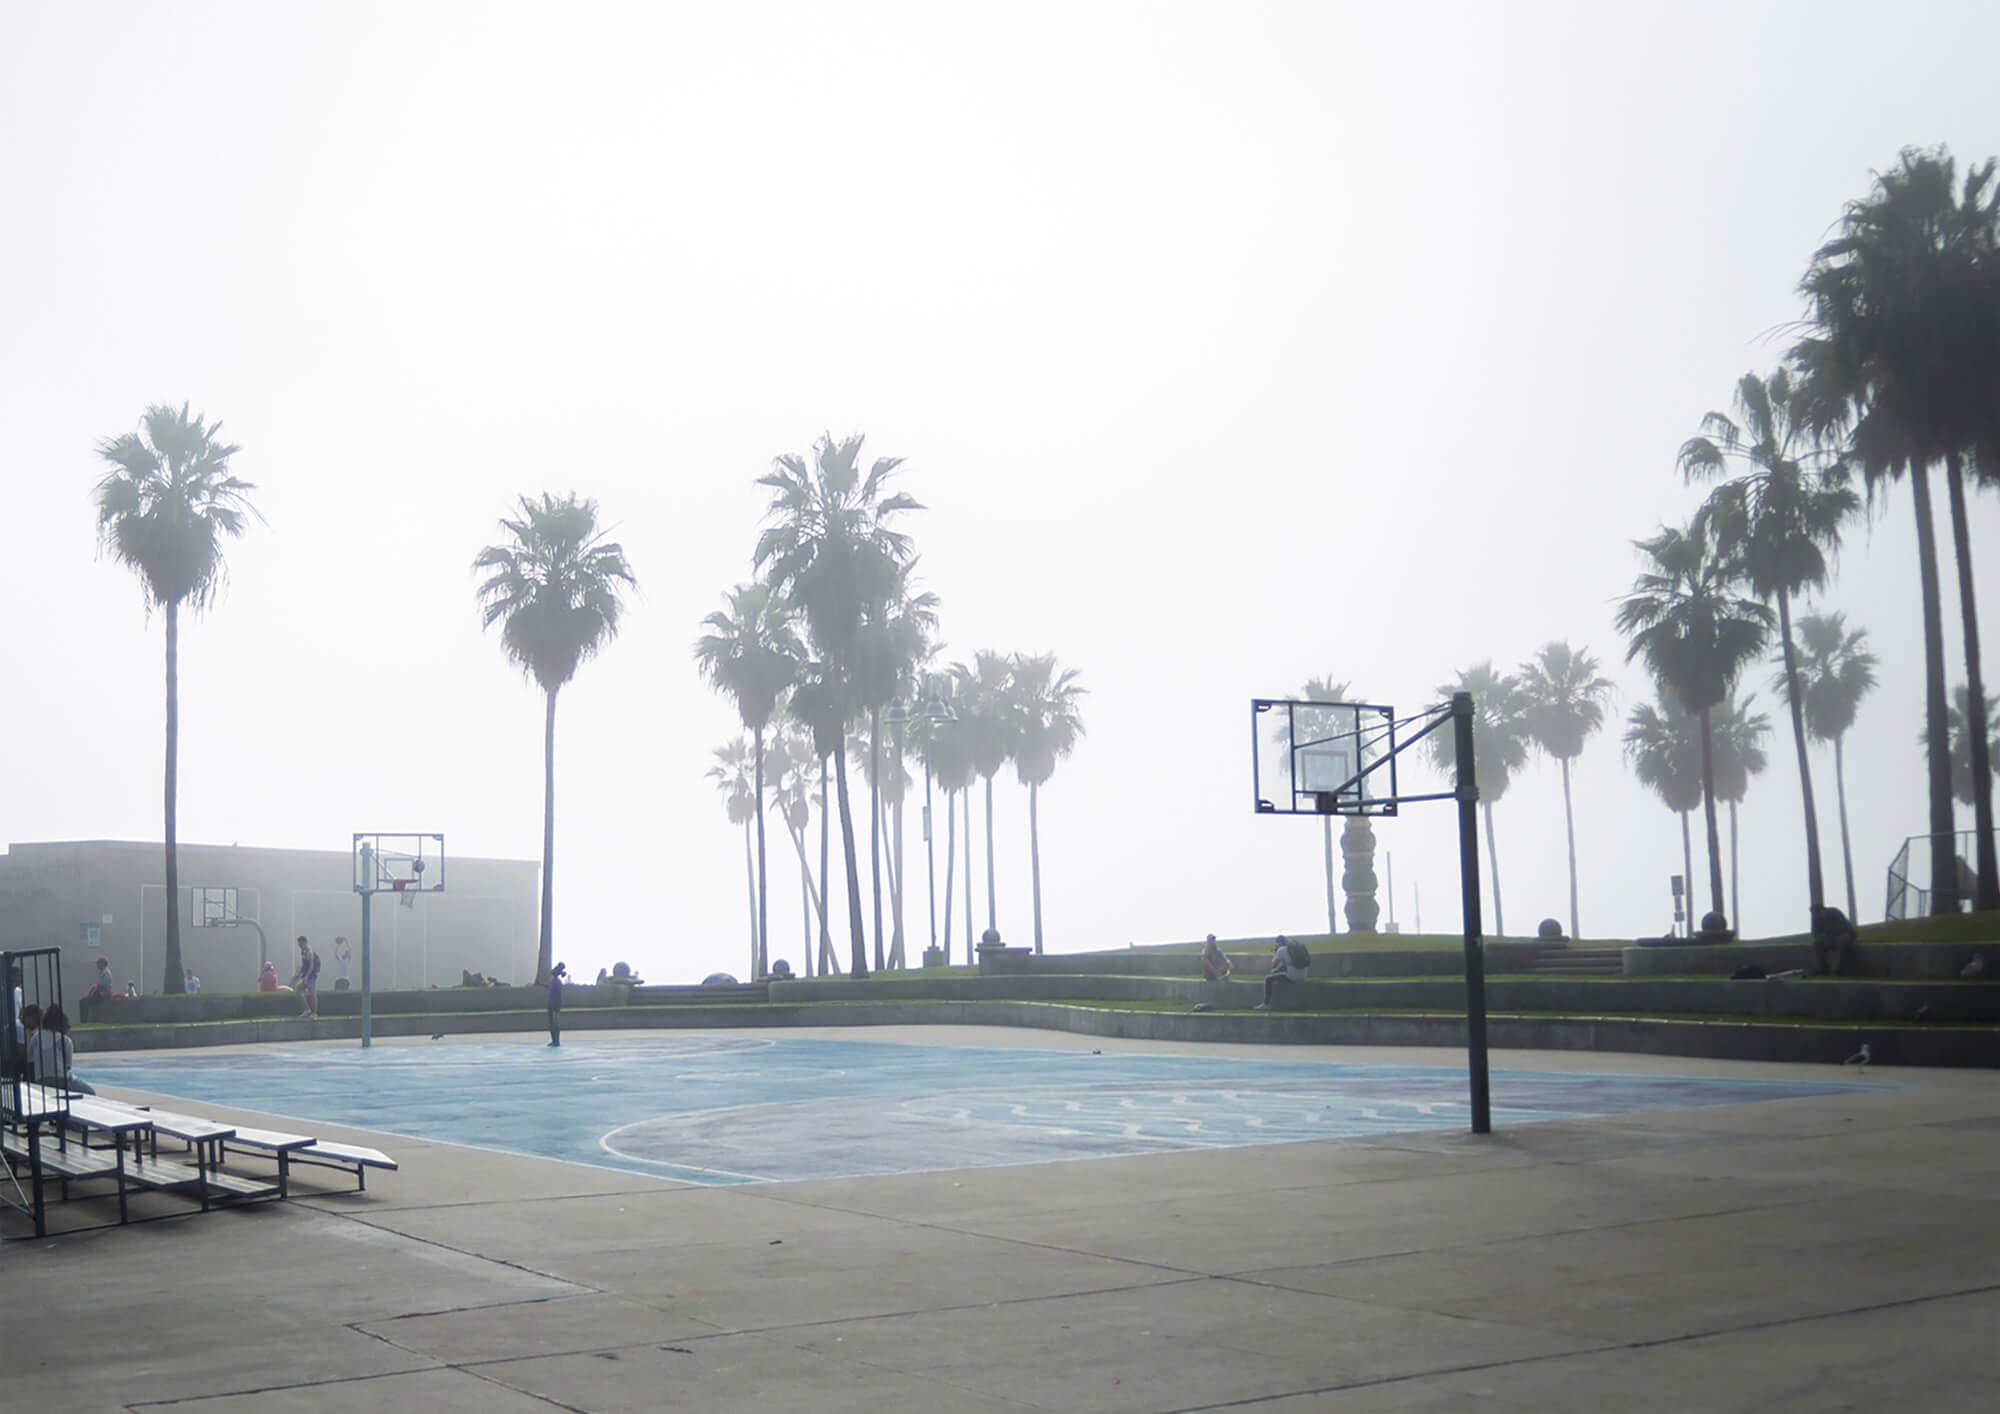 Venice beach for basketball court United States California